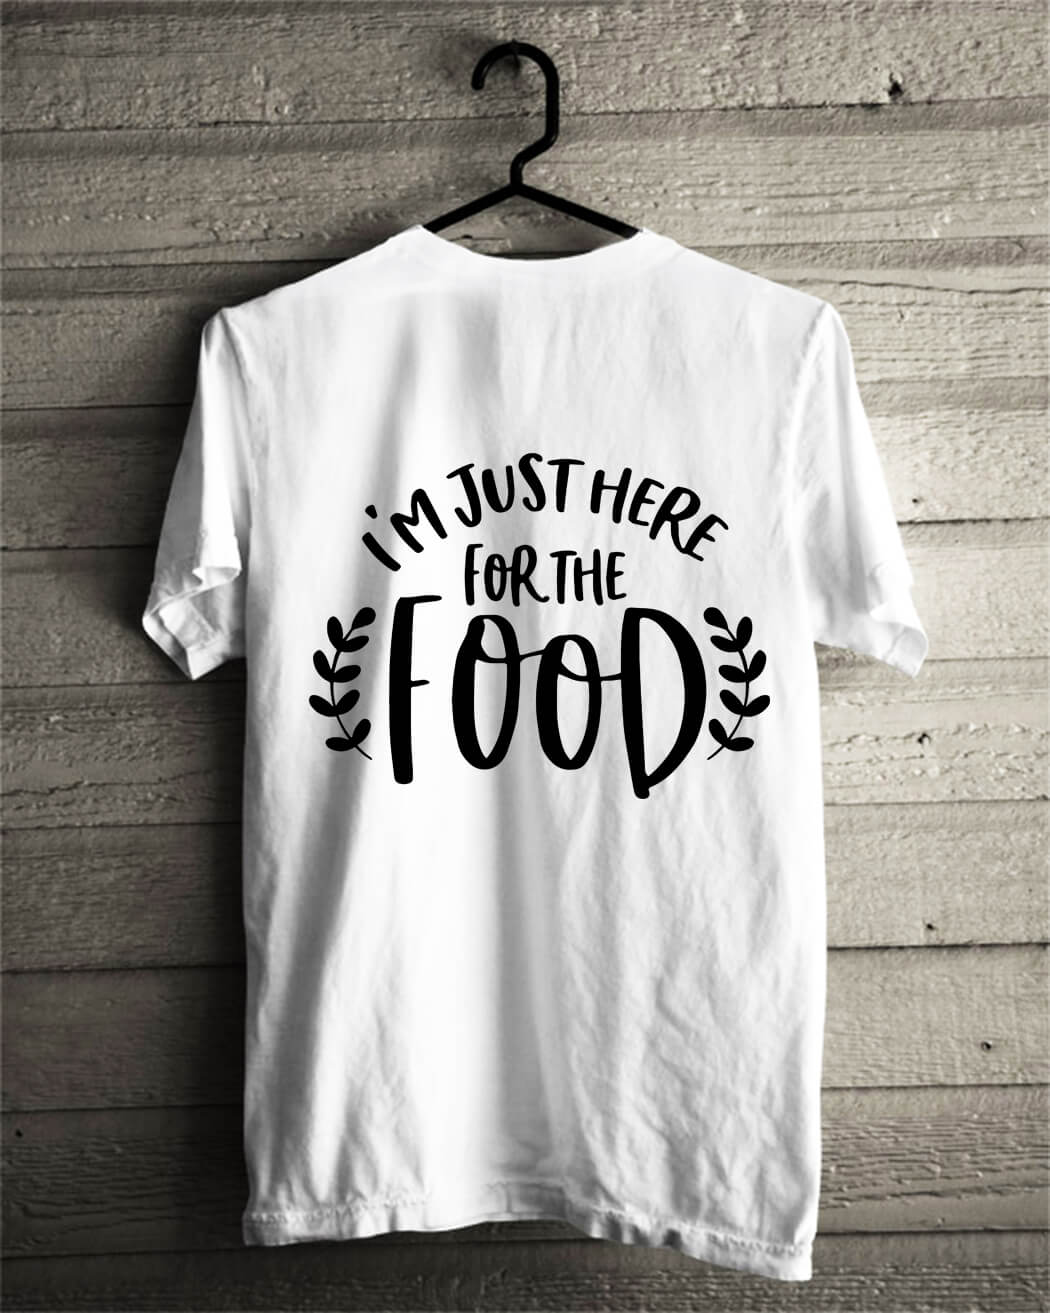 I'm just here for the food shirt